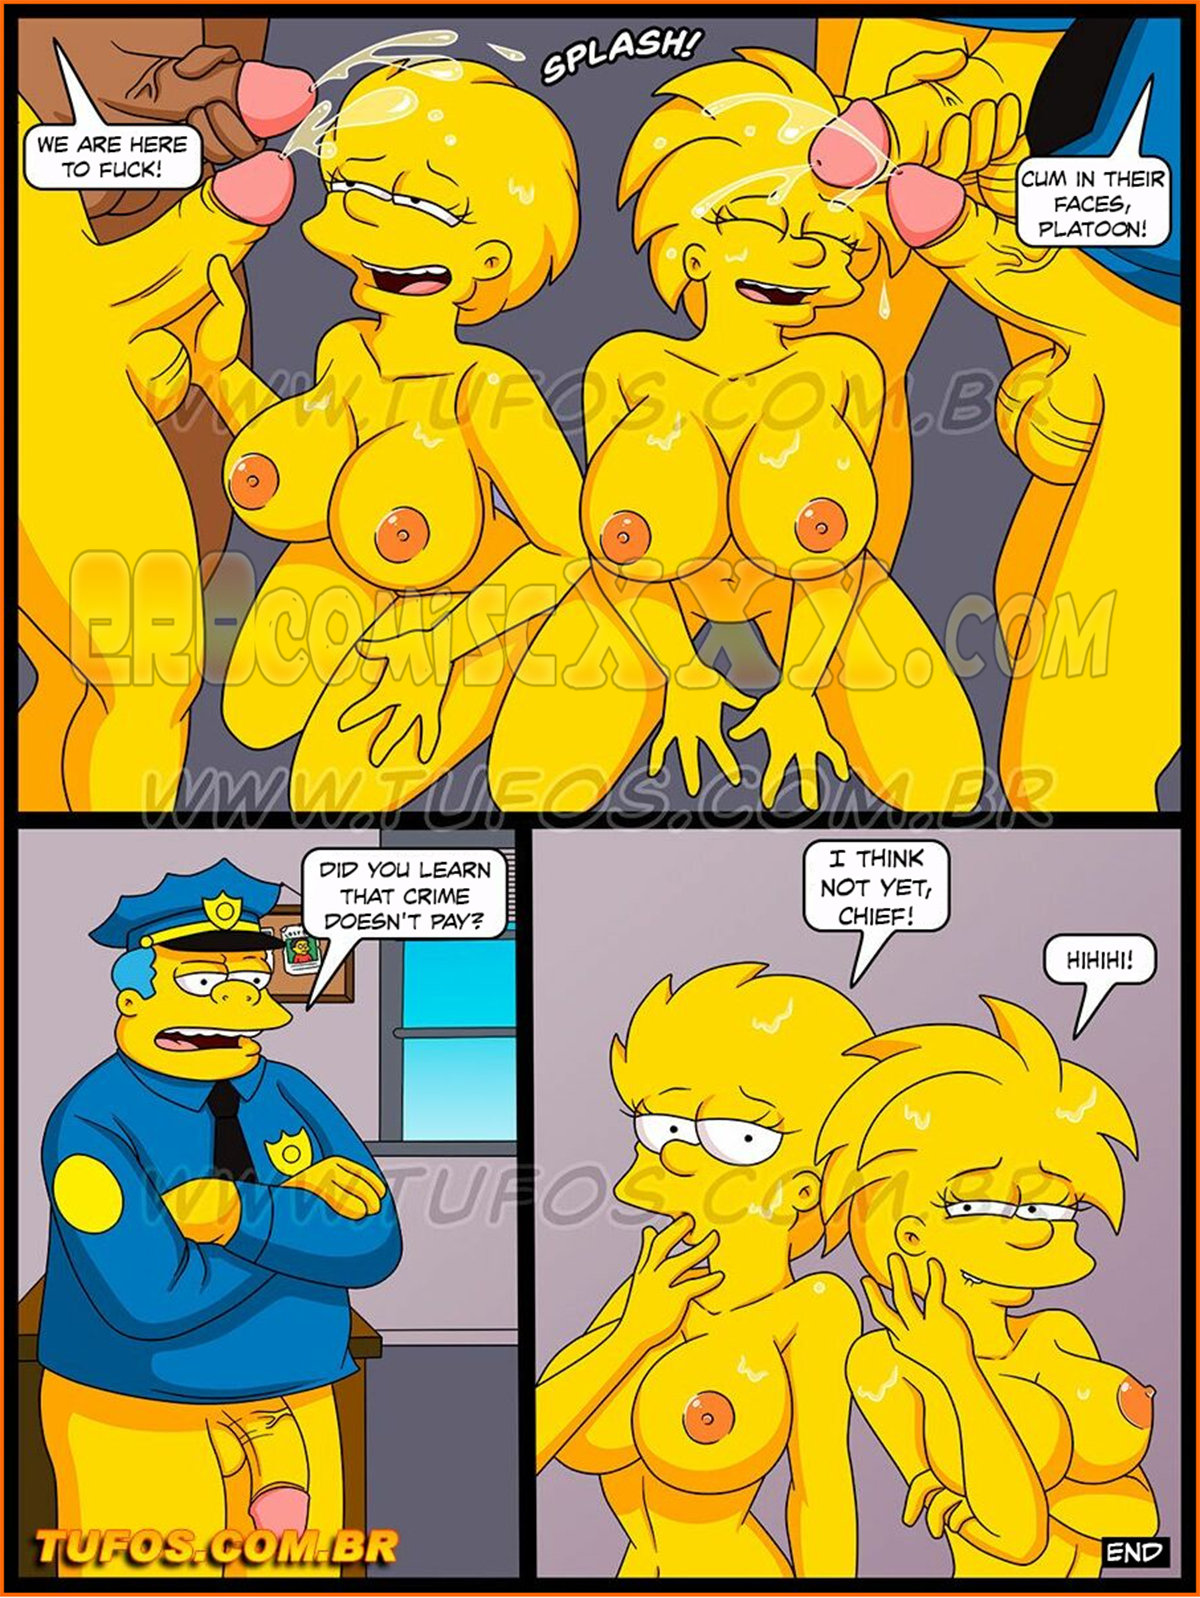 012 13 - The Simpsons 31 - Obscene Attack on Modesty - Tufos.